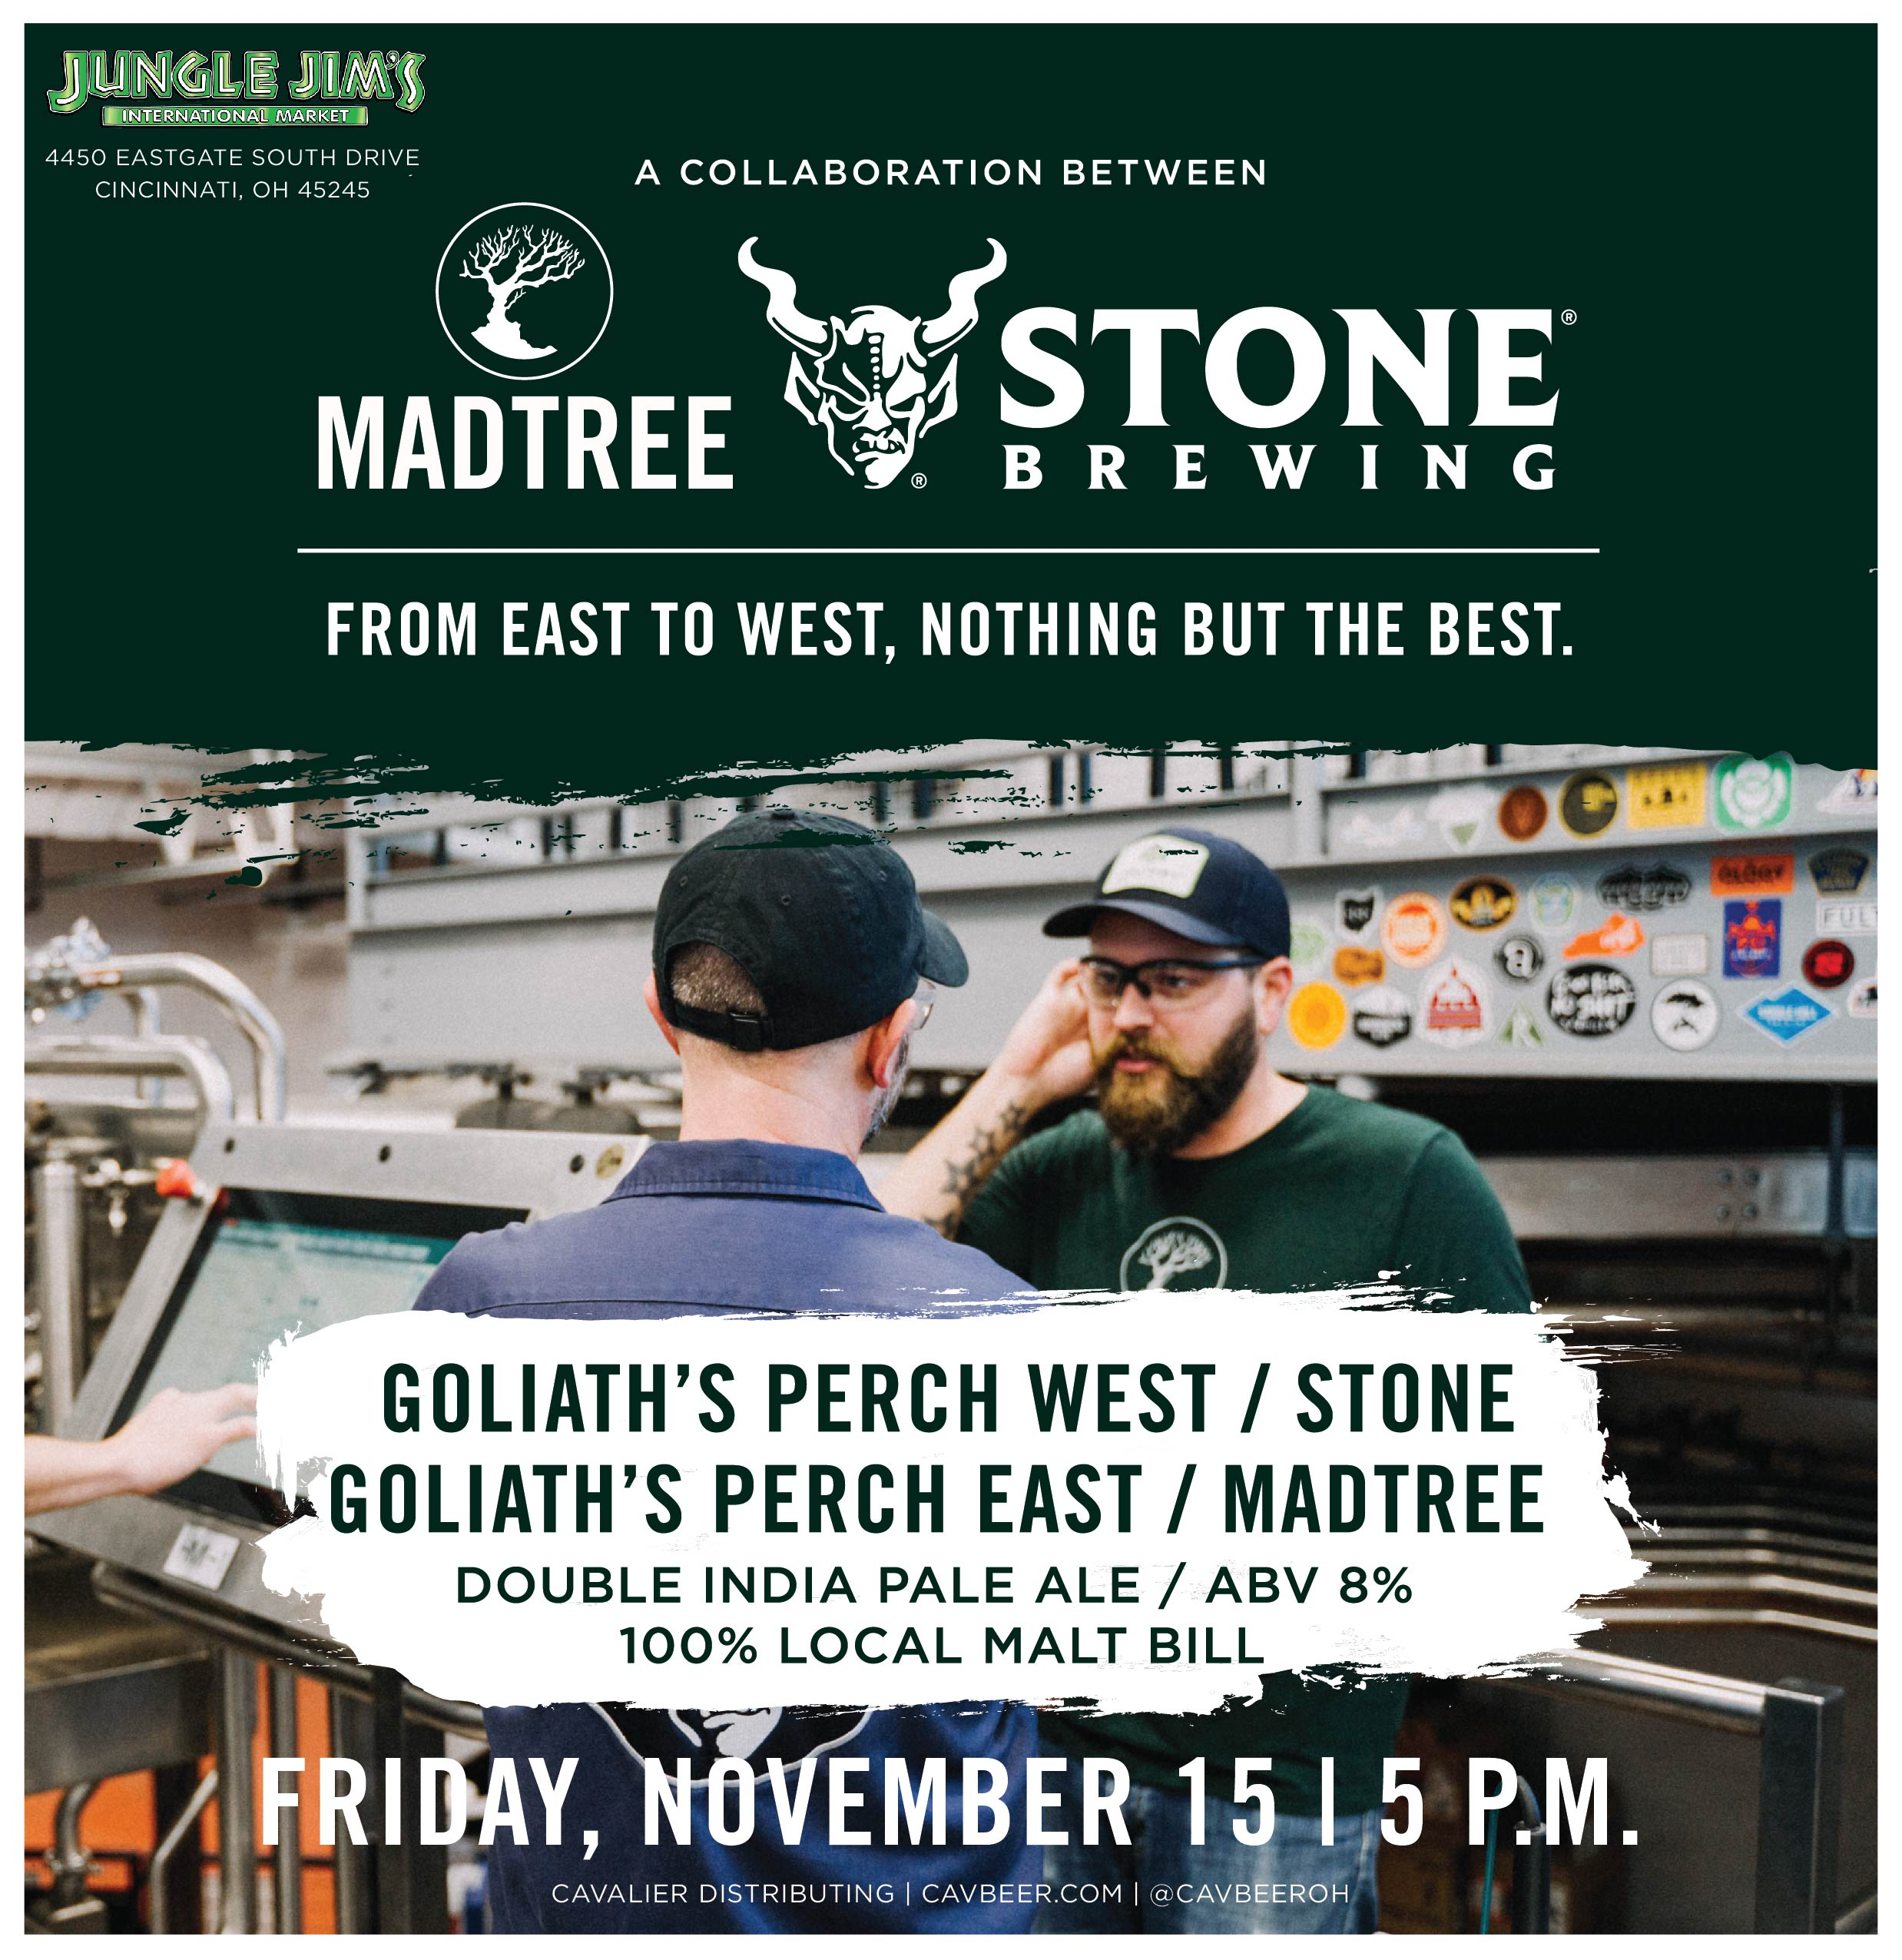 MadTree & Stone Brewing Collab @ Jungle Jim's Eastgate